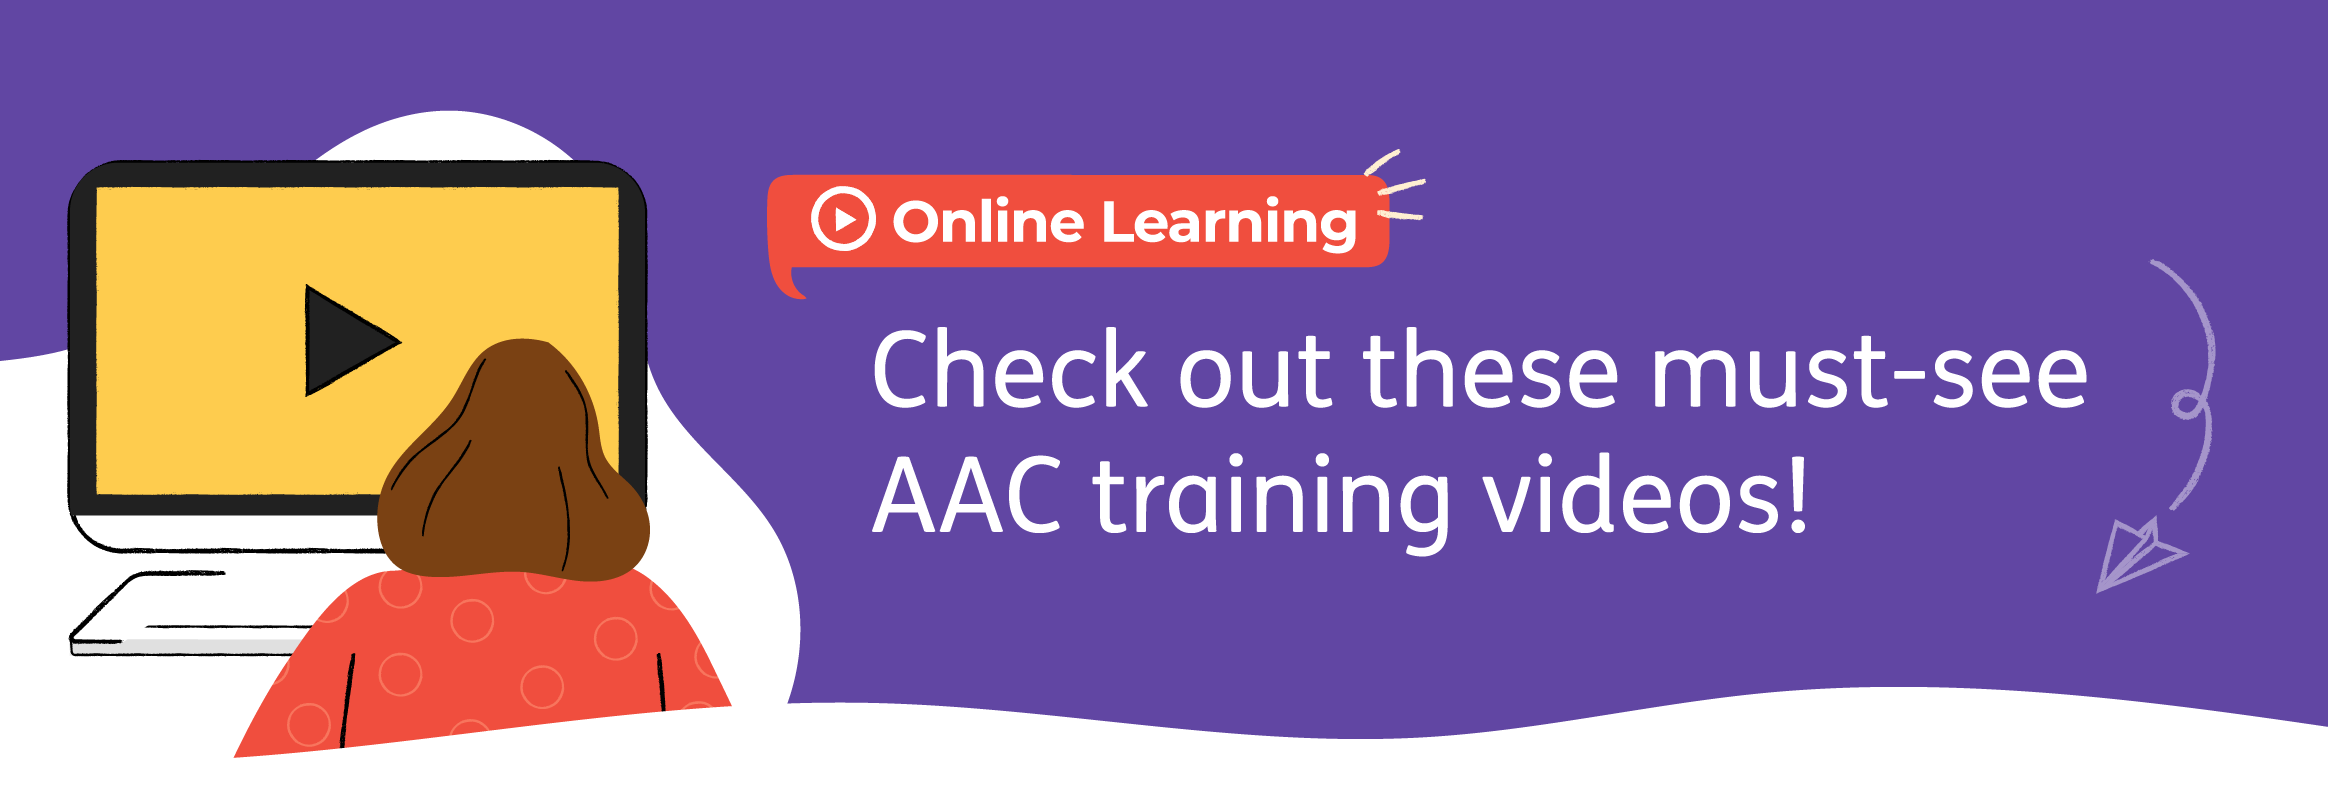 Illustration of person sitting at computer looking at a play button for the AAC training videos